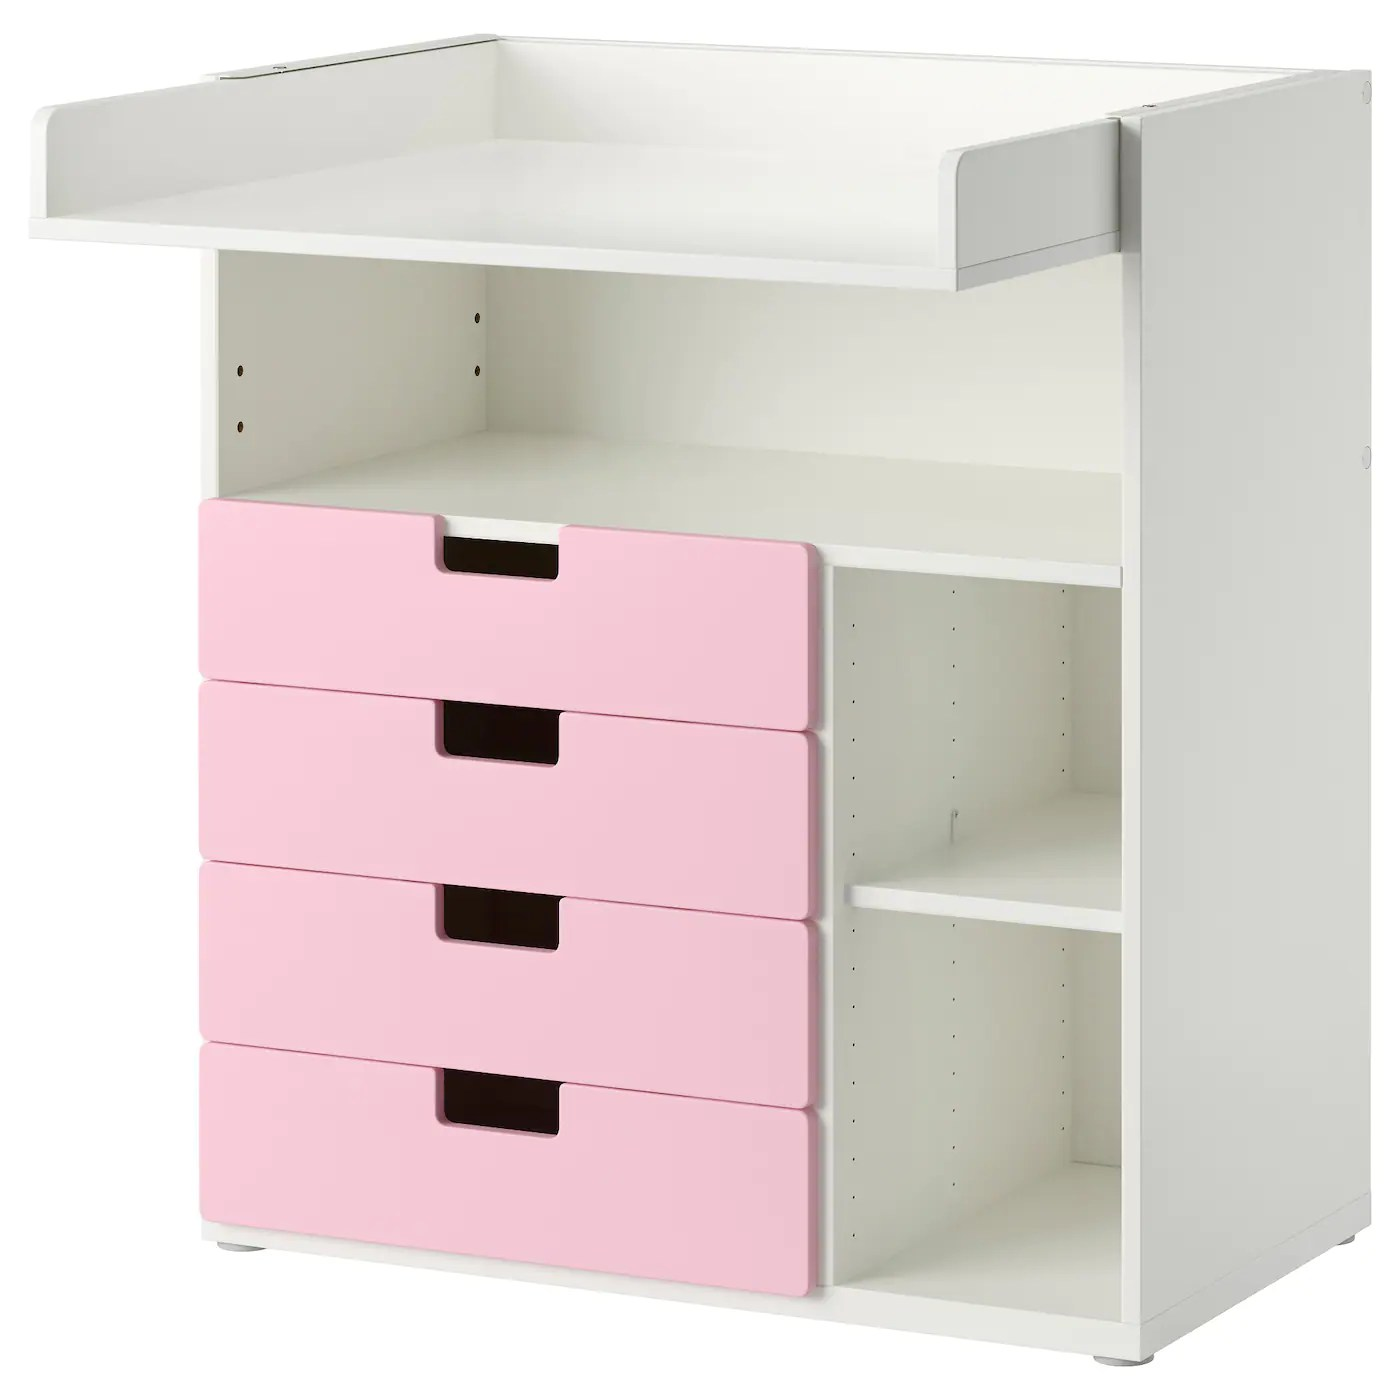 Wickeltisch Ikea Stuva Changing Table With 4 Drawers White Pink 90x79x102